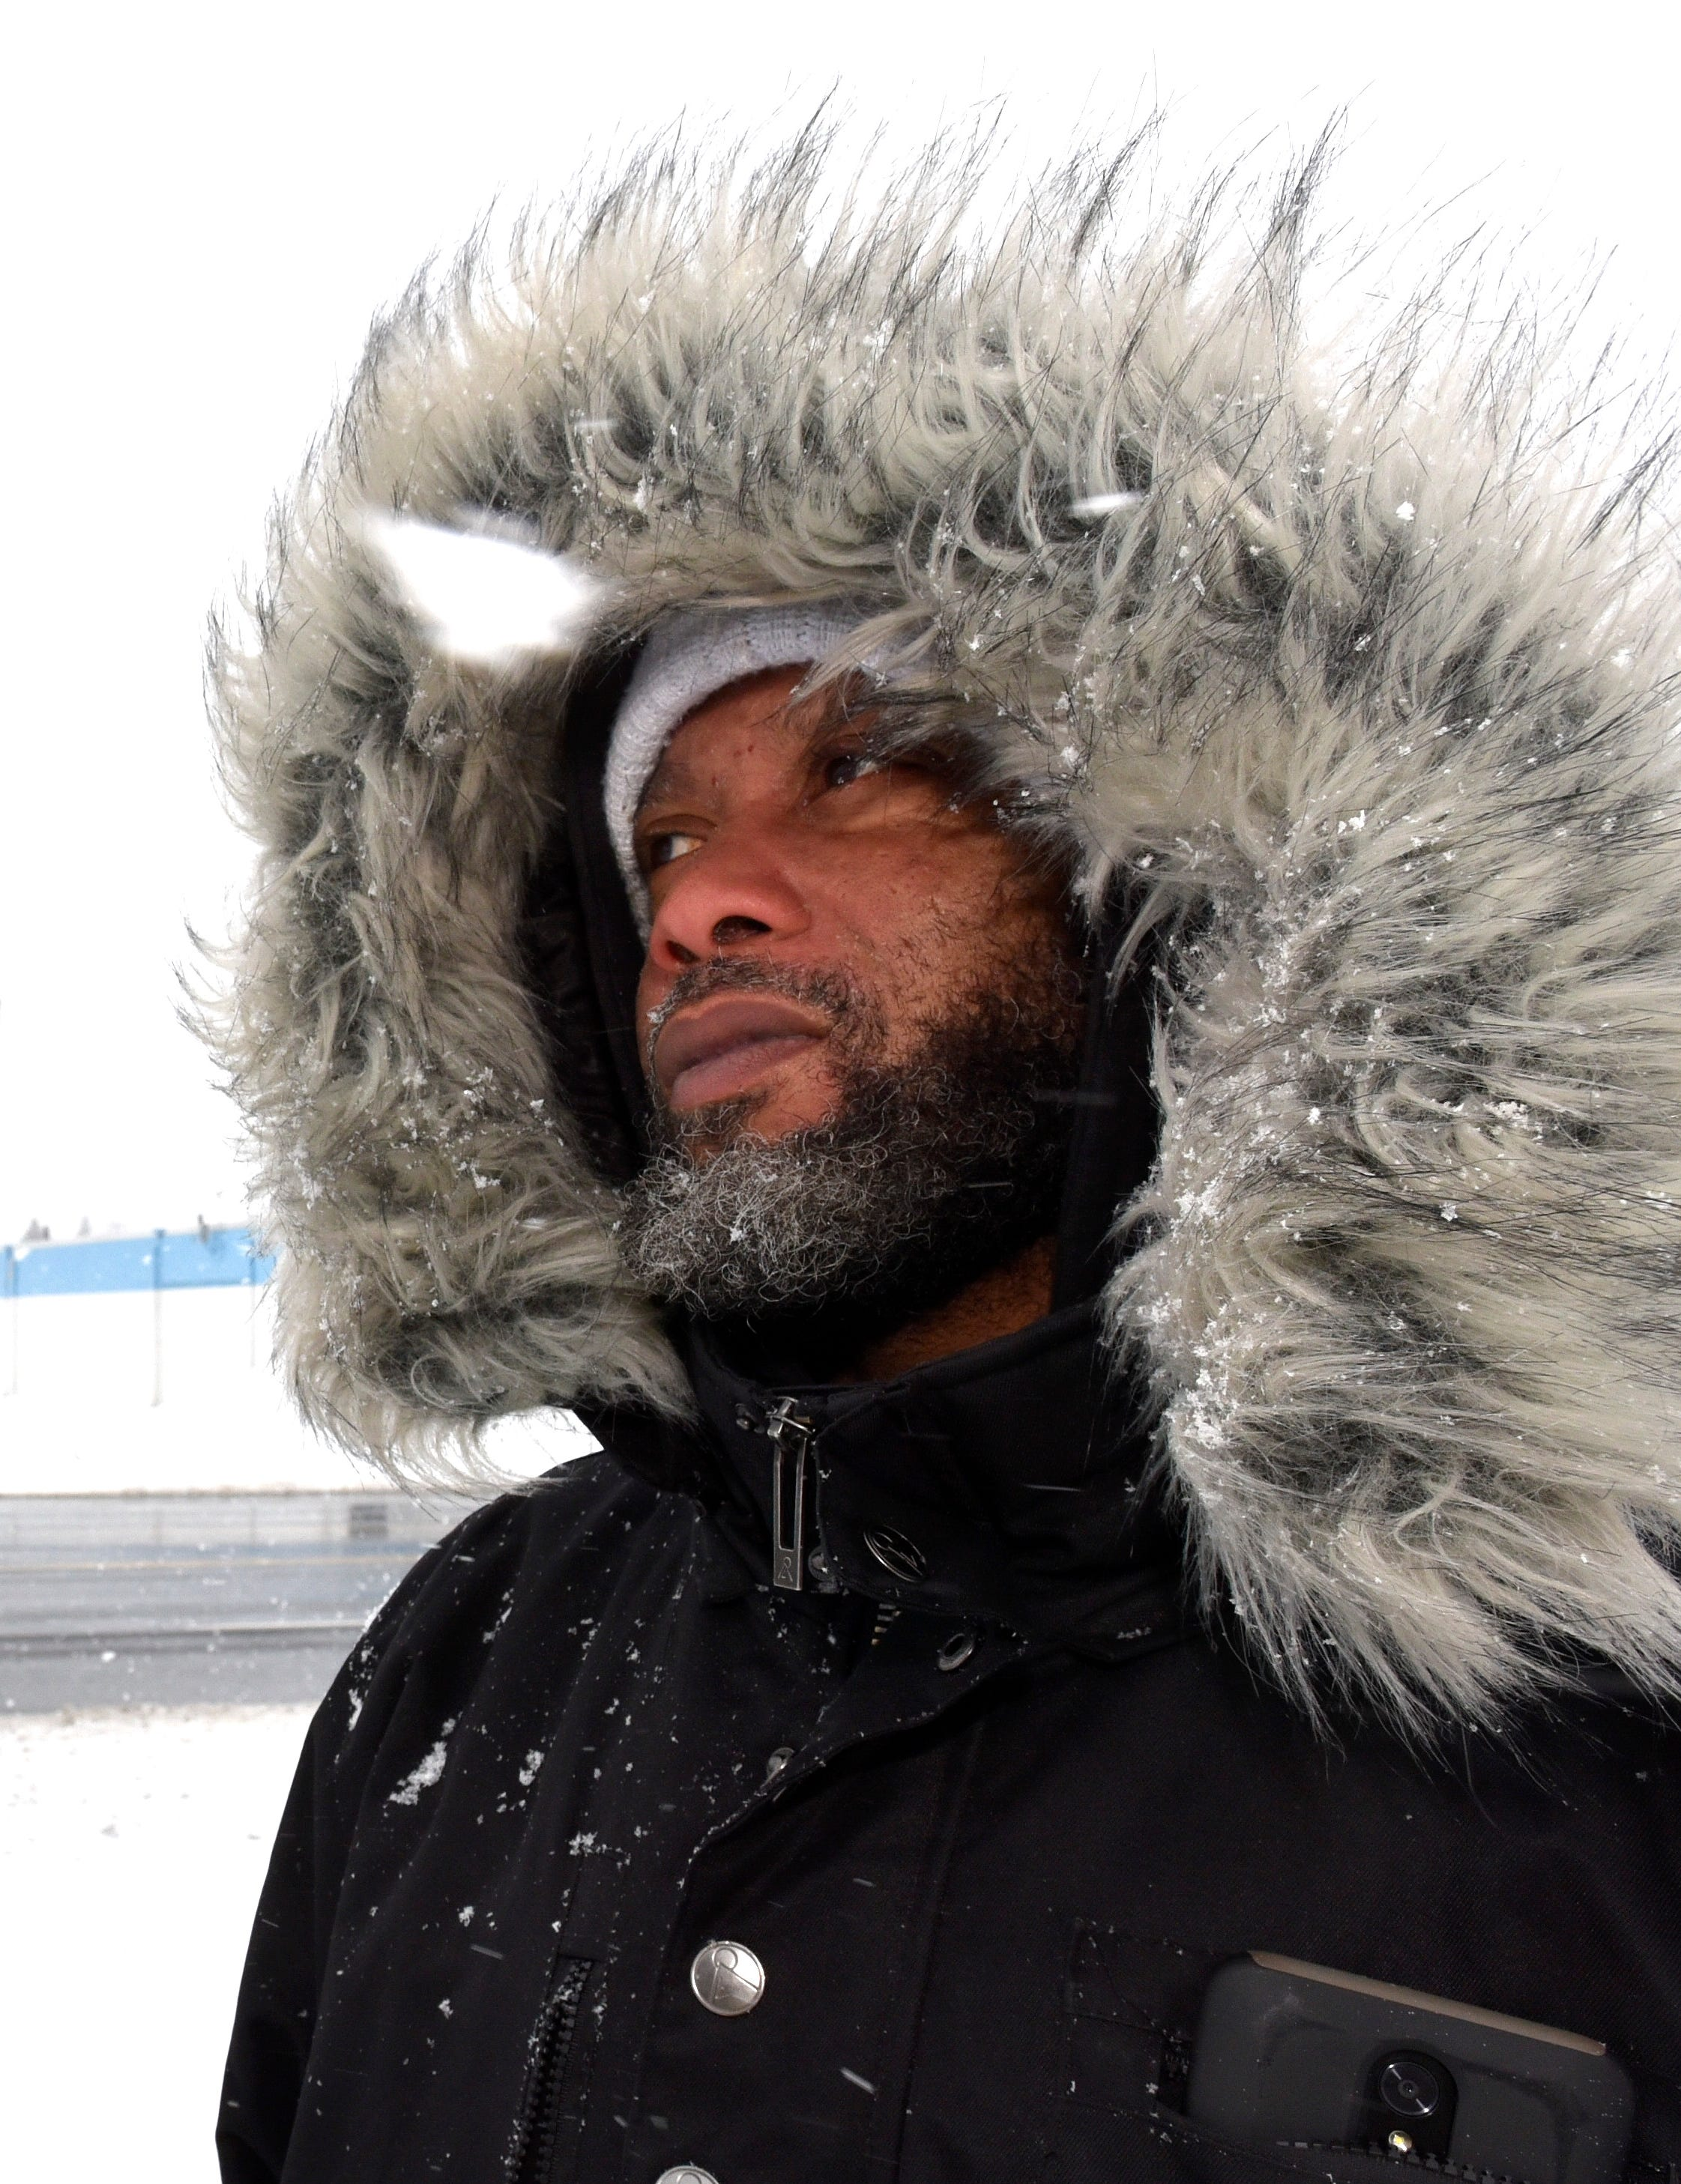 Paul Hurst of Clinton Township braces for the cold while waiting for a SMART bus in Sterling Heights on Feb. 13, 2019.